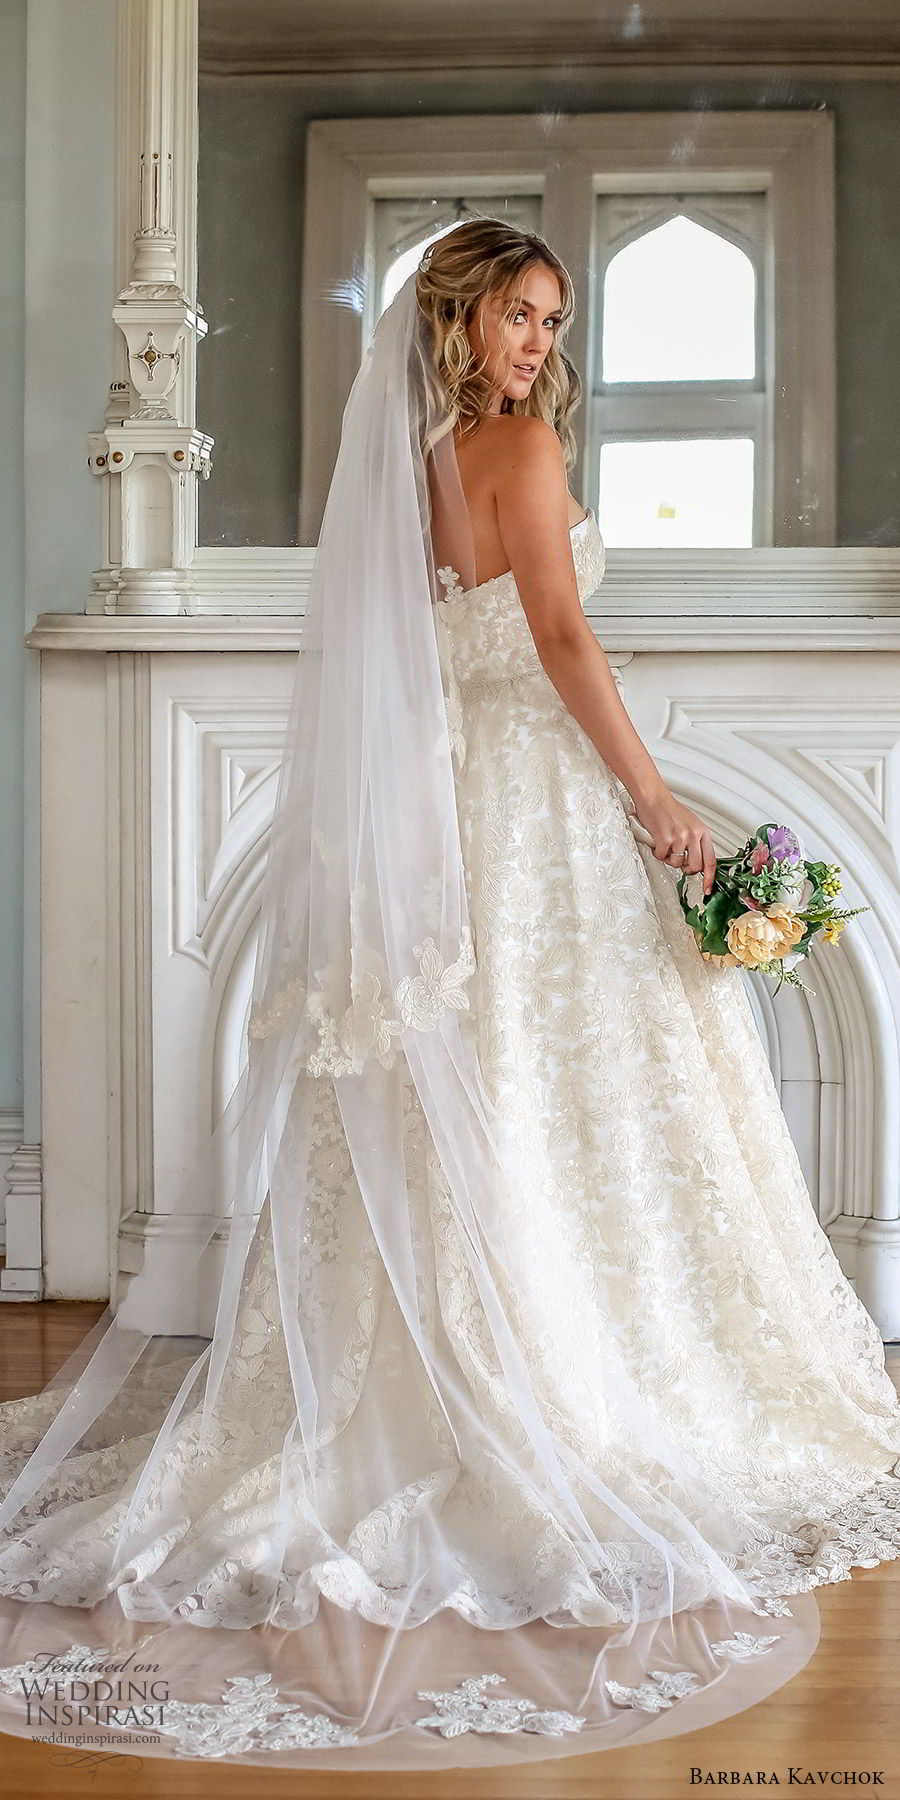 barbara kavchok fall 2019 bridal strapless sweetheart embellished lace ball gown wedding dress (12) zbv chapel train glitzy romantic elegant